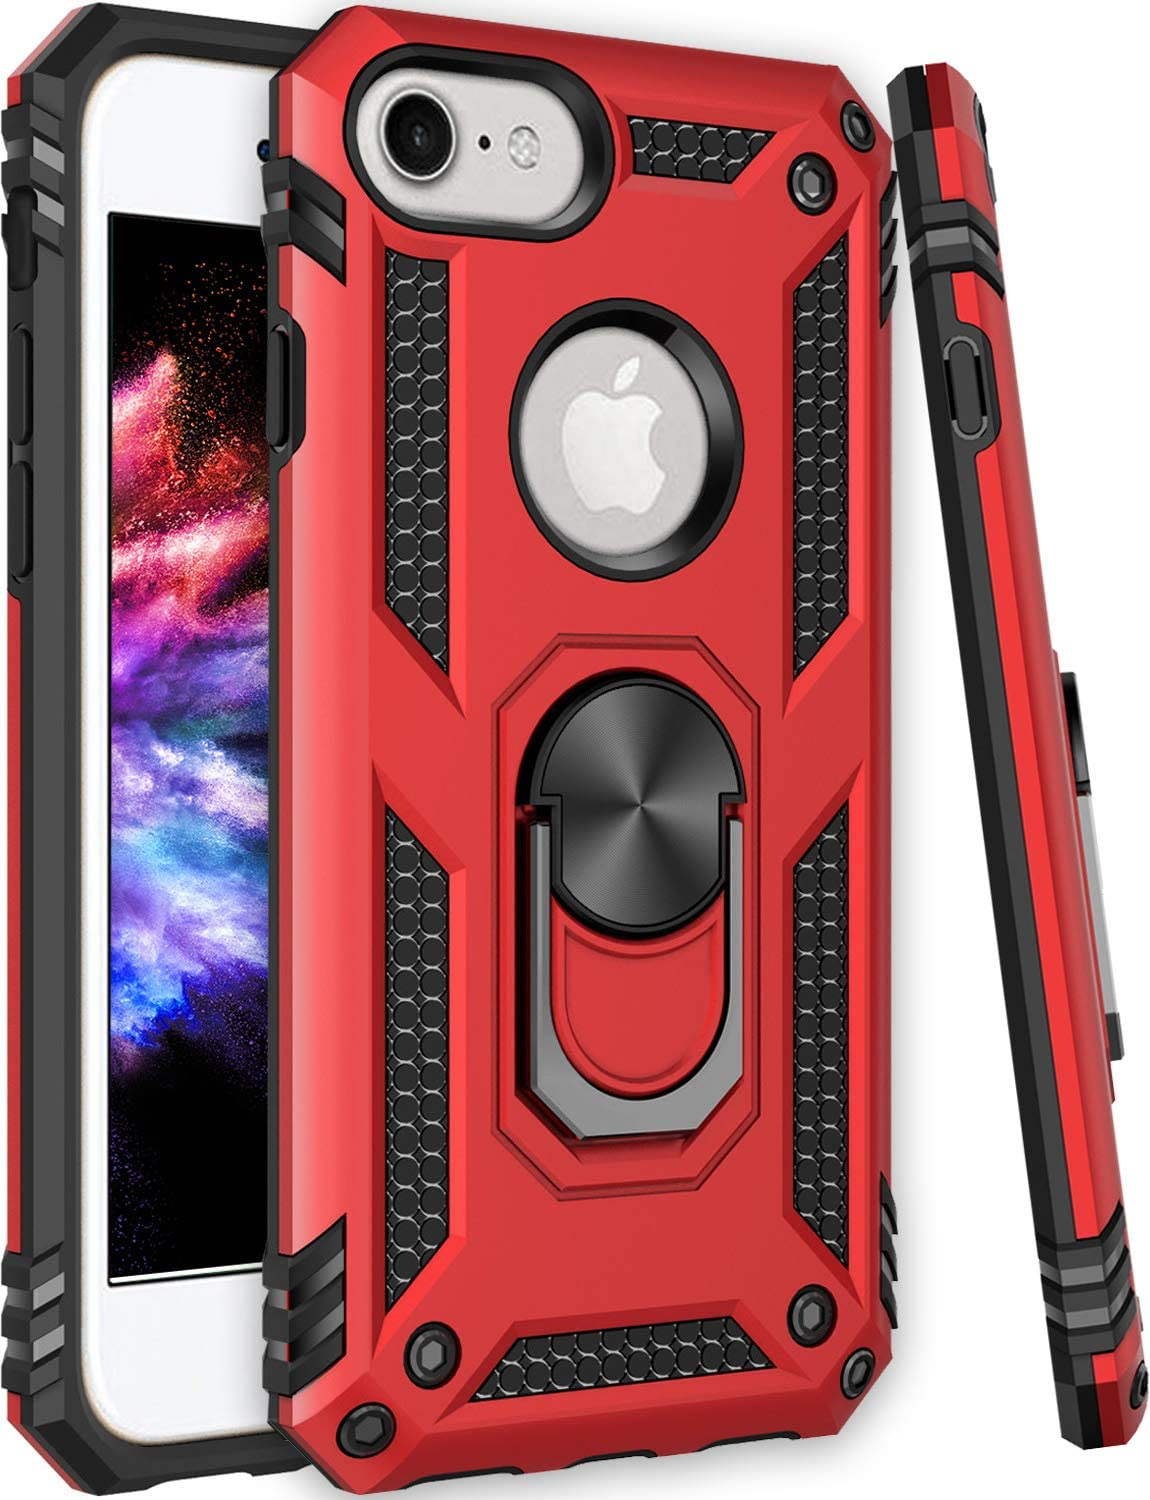 iPhone SE2 Case,iPhone 6 6s Case,iPhone 7 Case,iPhone 8 Case,ZADORN 15ft Drop Tested Military Grade Shockproof Slim Fit Protective Phone Case for iPhone SE2/iPhone 6 6S/iPhone 7/iPhone 8 Red